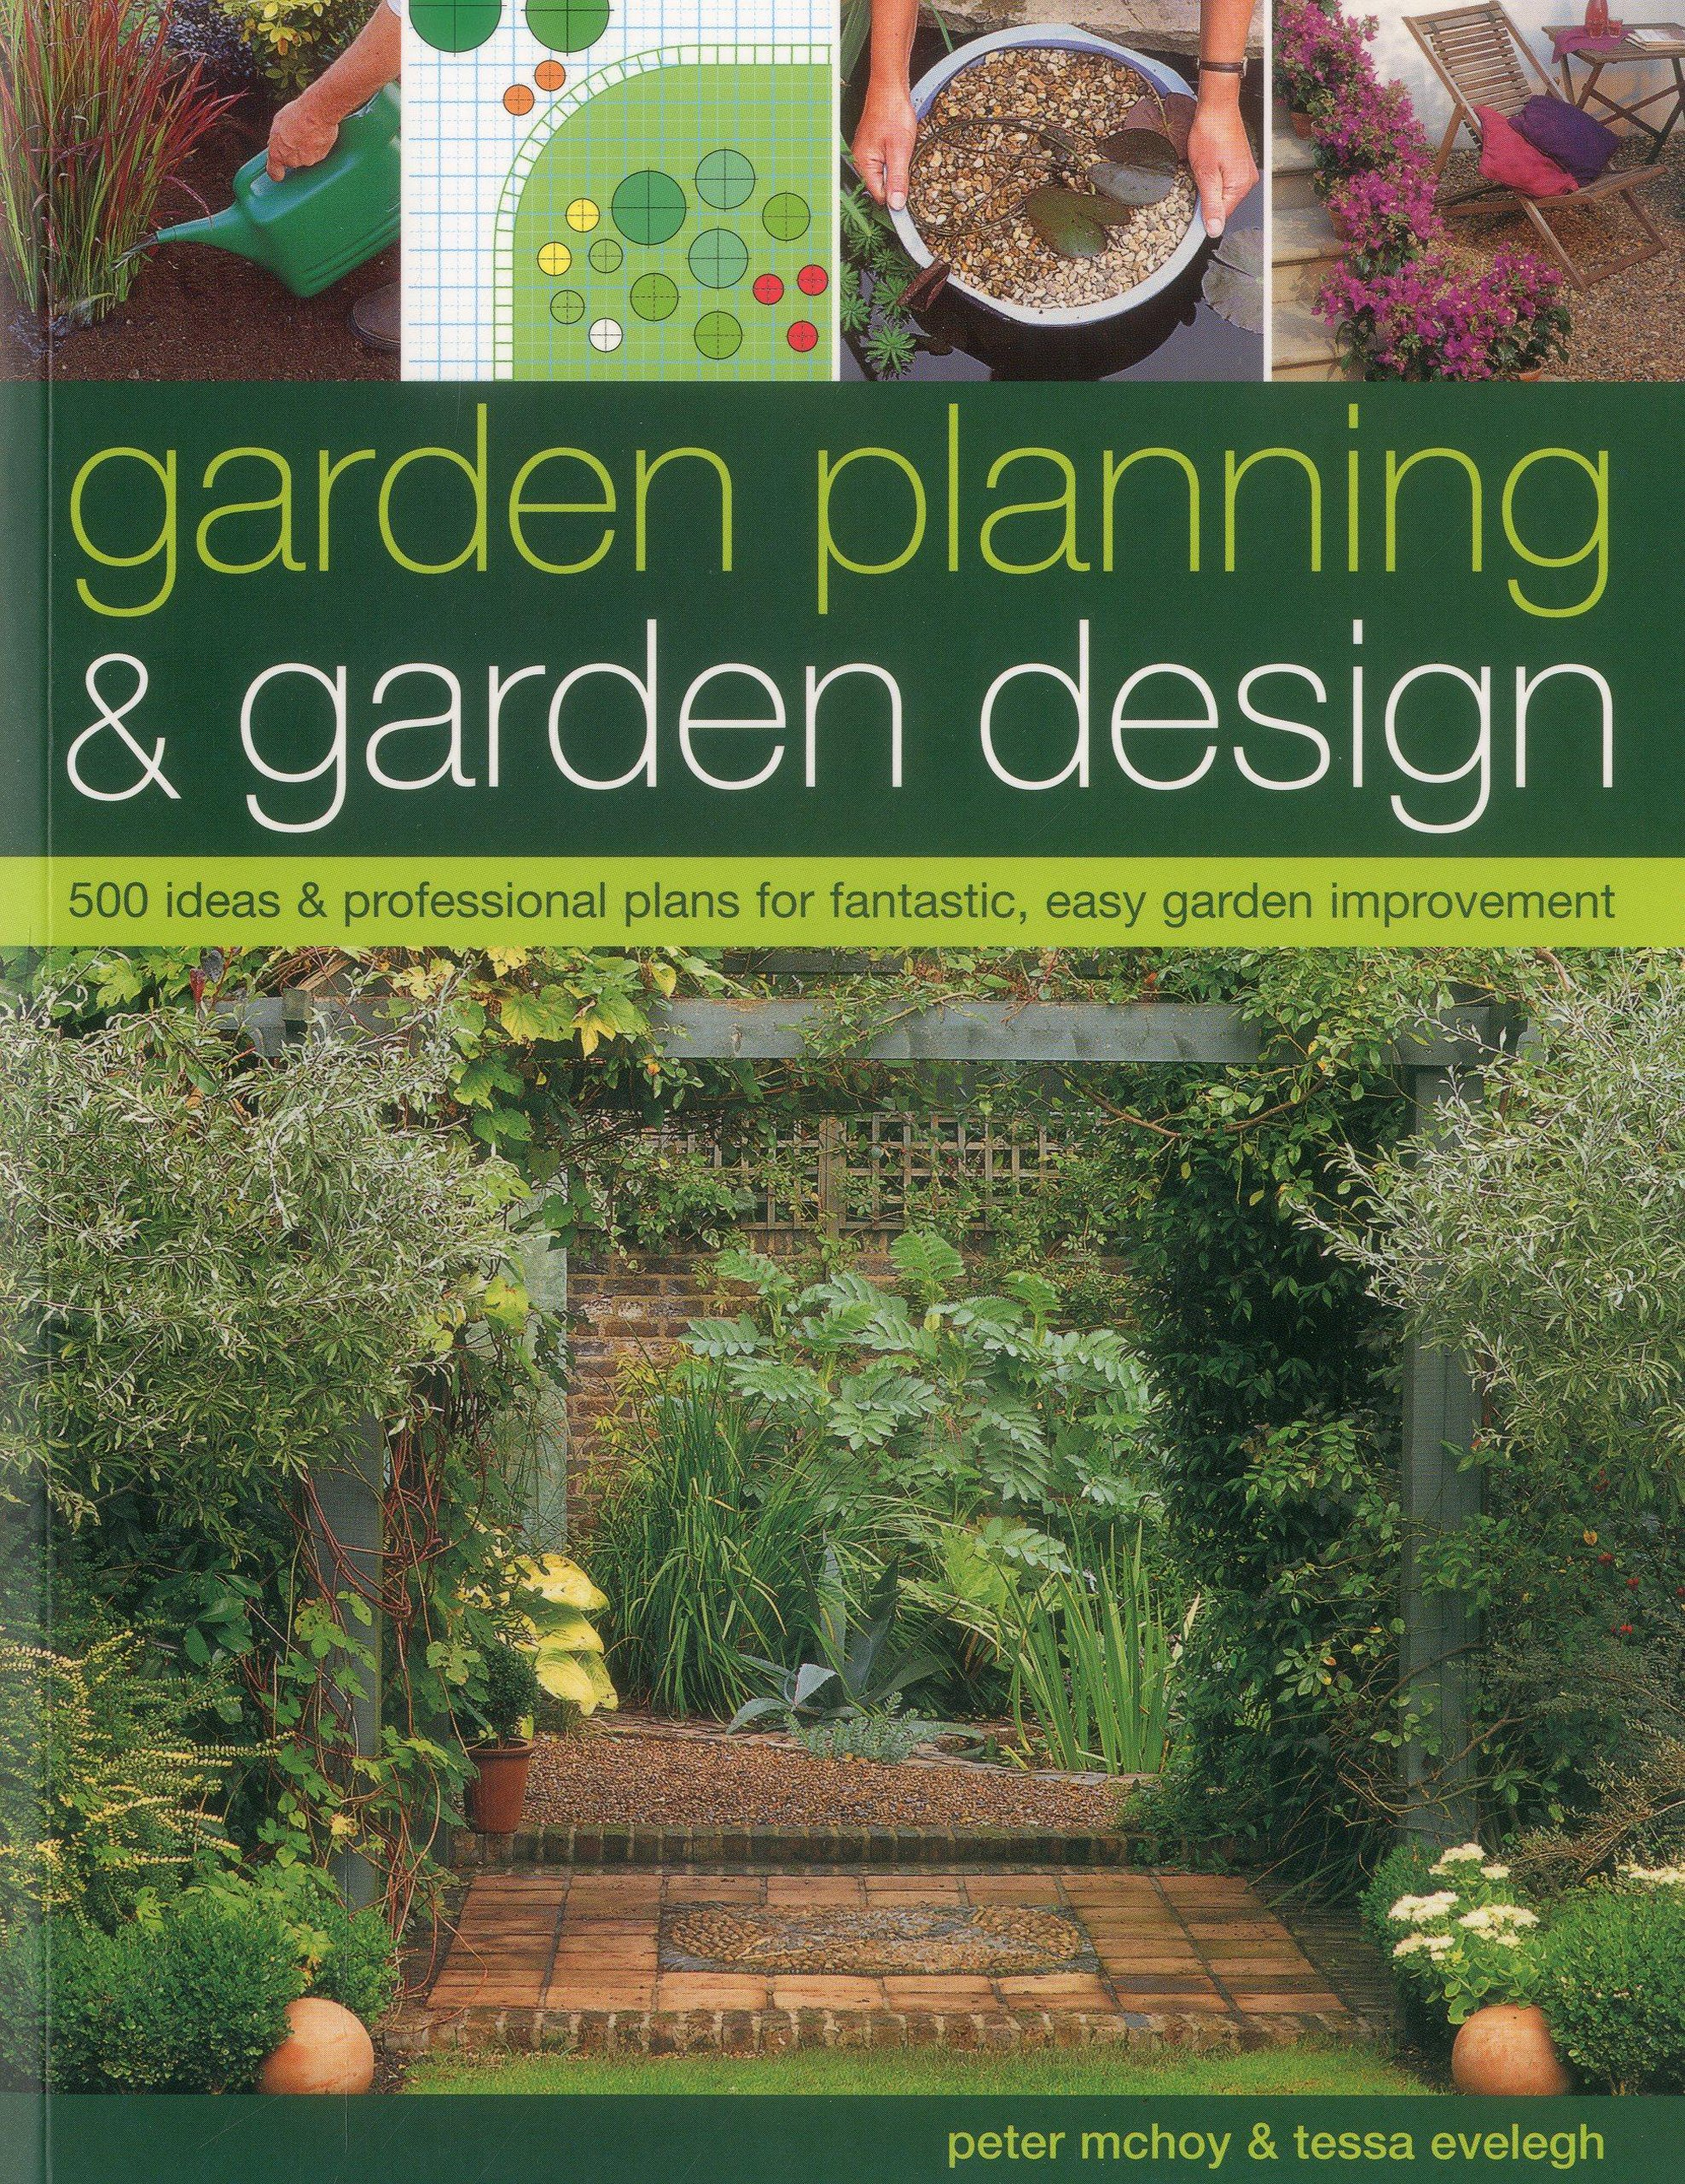 garden planning garden design 500 ideas professional plans for fantastic easy garden improvement peter mchoy tessa evelegh 9781780191263